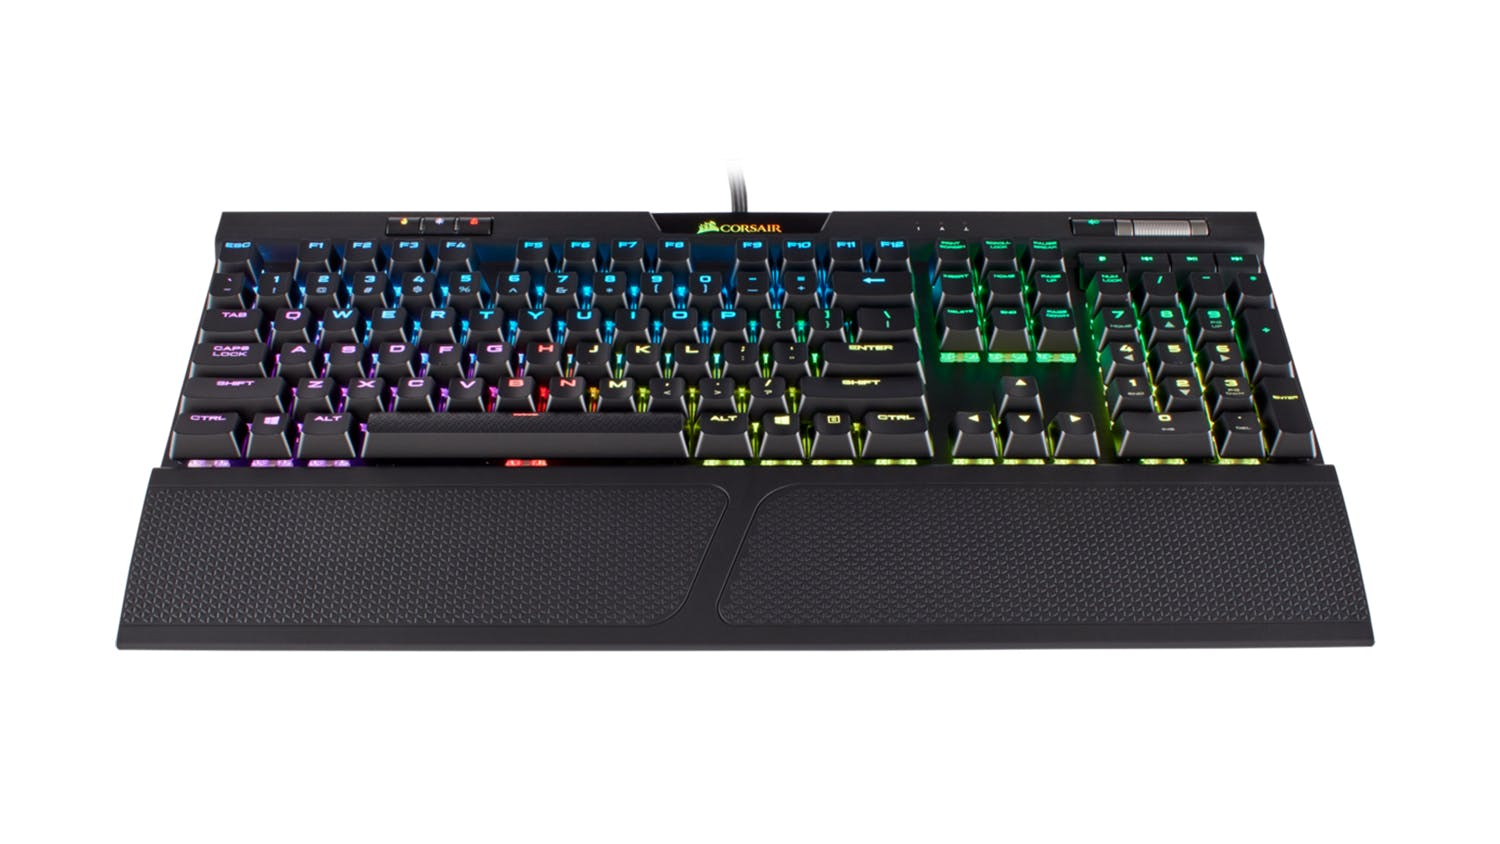 CORSAIR K70 RGB MK.2 Rapidfire Mechanical Gaming Keyboard